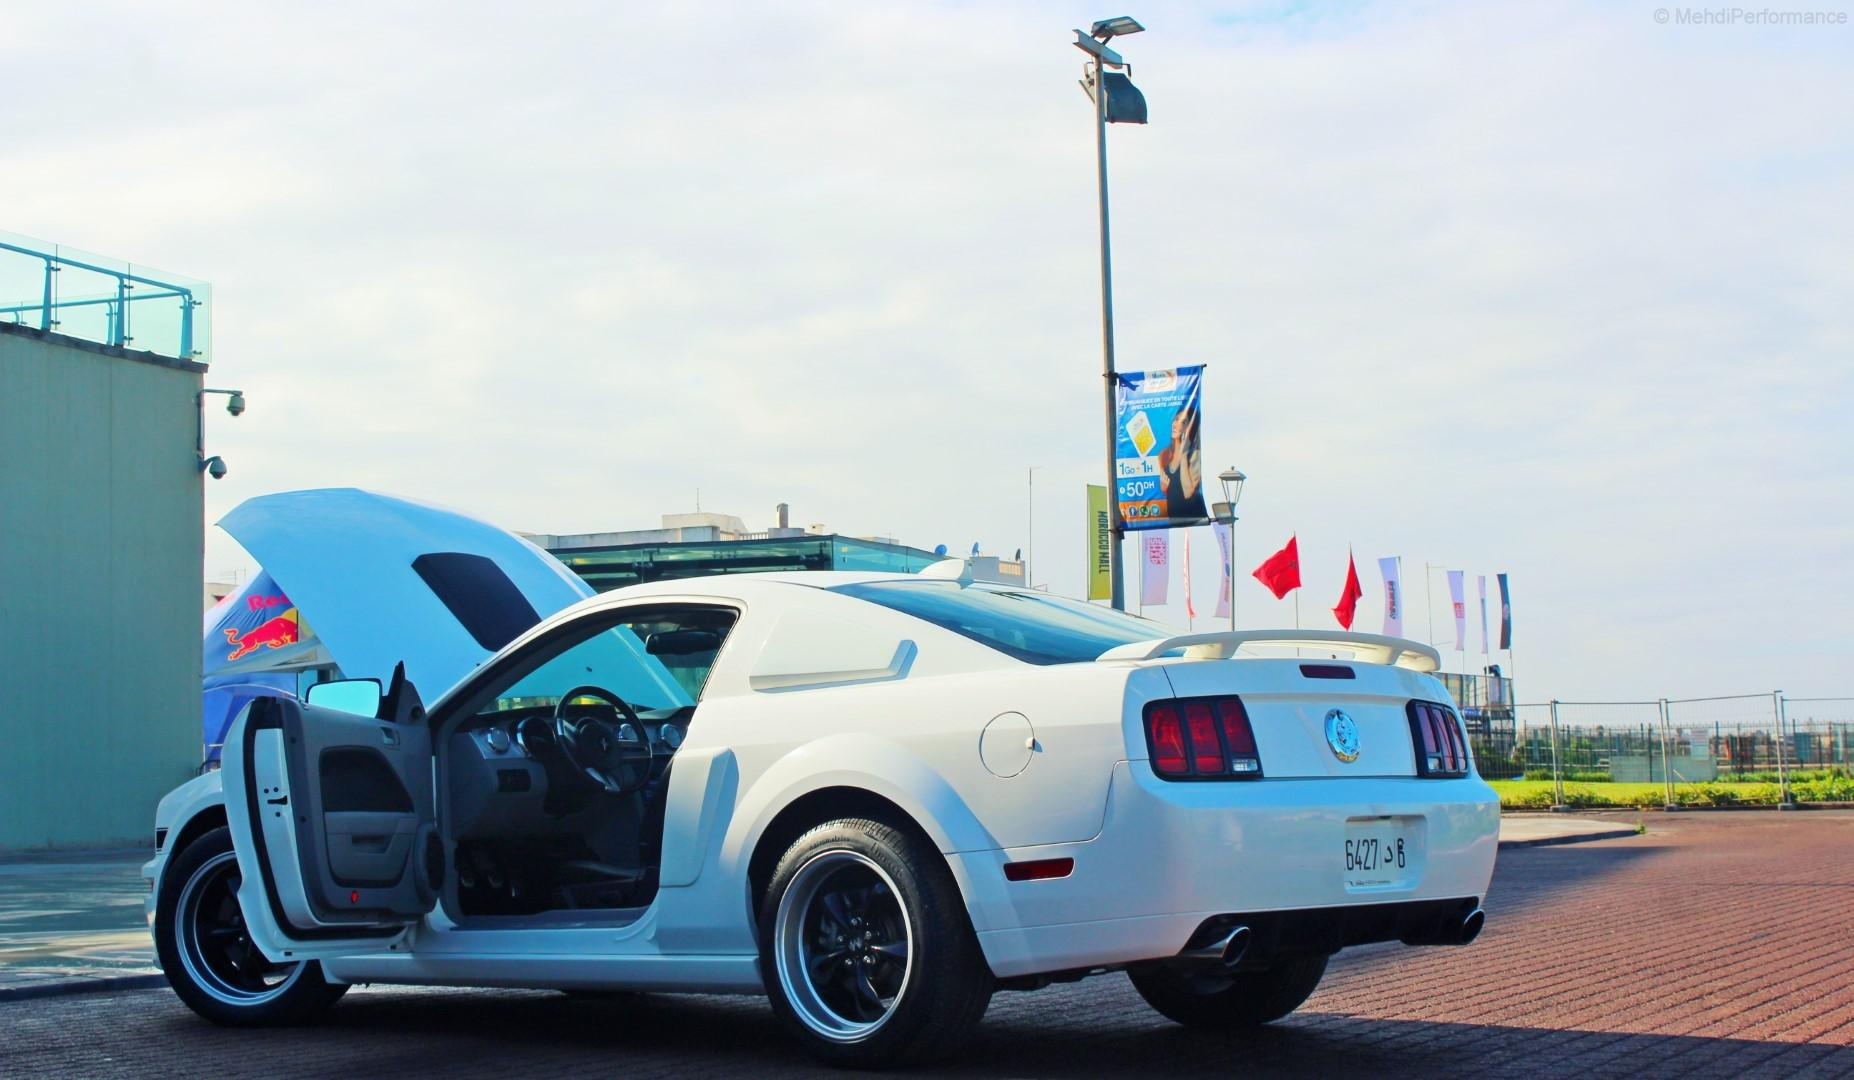 serie-speciale-au-maroc-ford-mustang-gt-v8-4-6l-california-special-manuelle-458-14.jpg